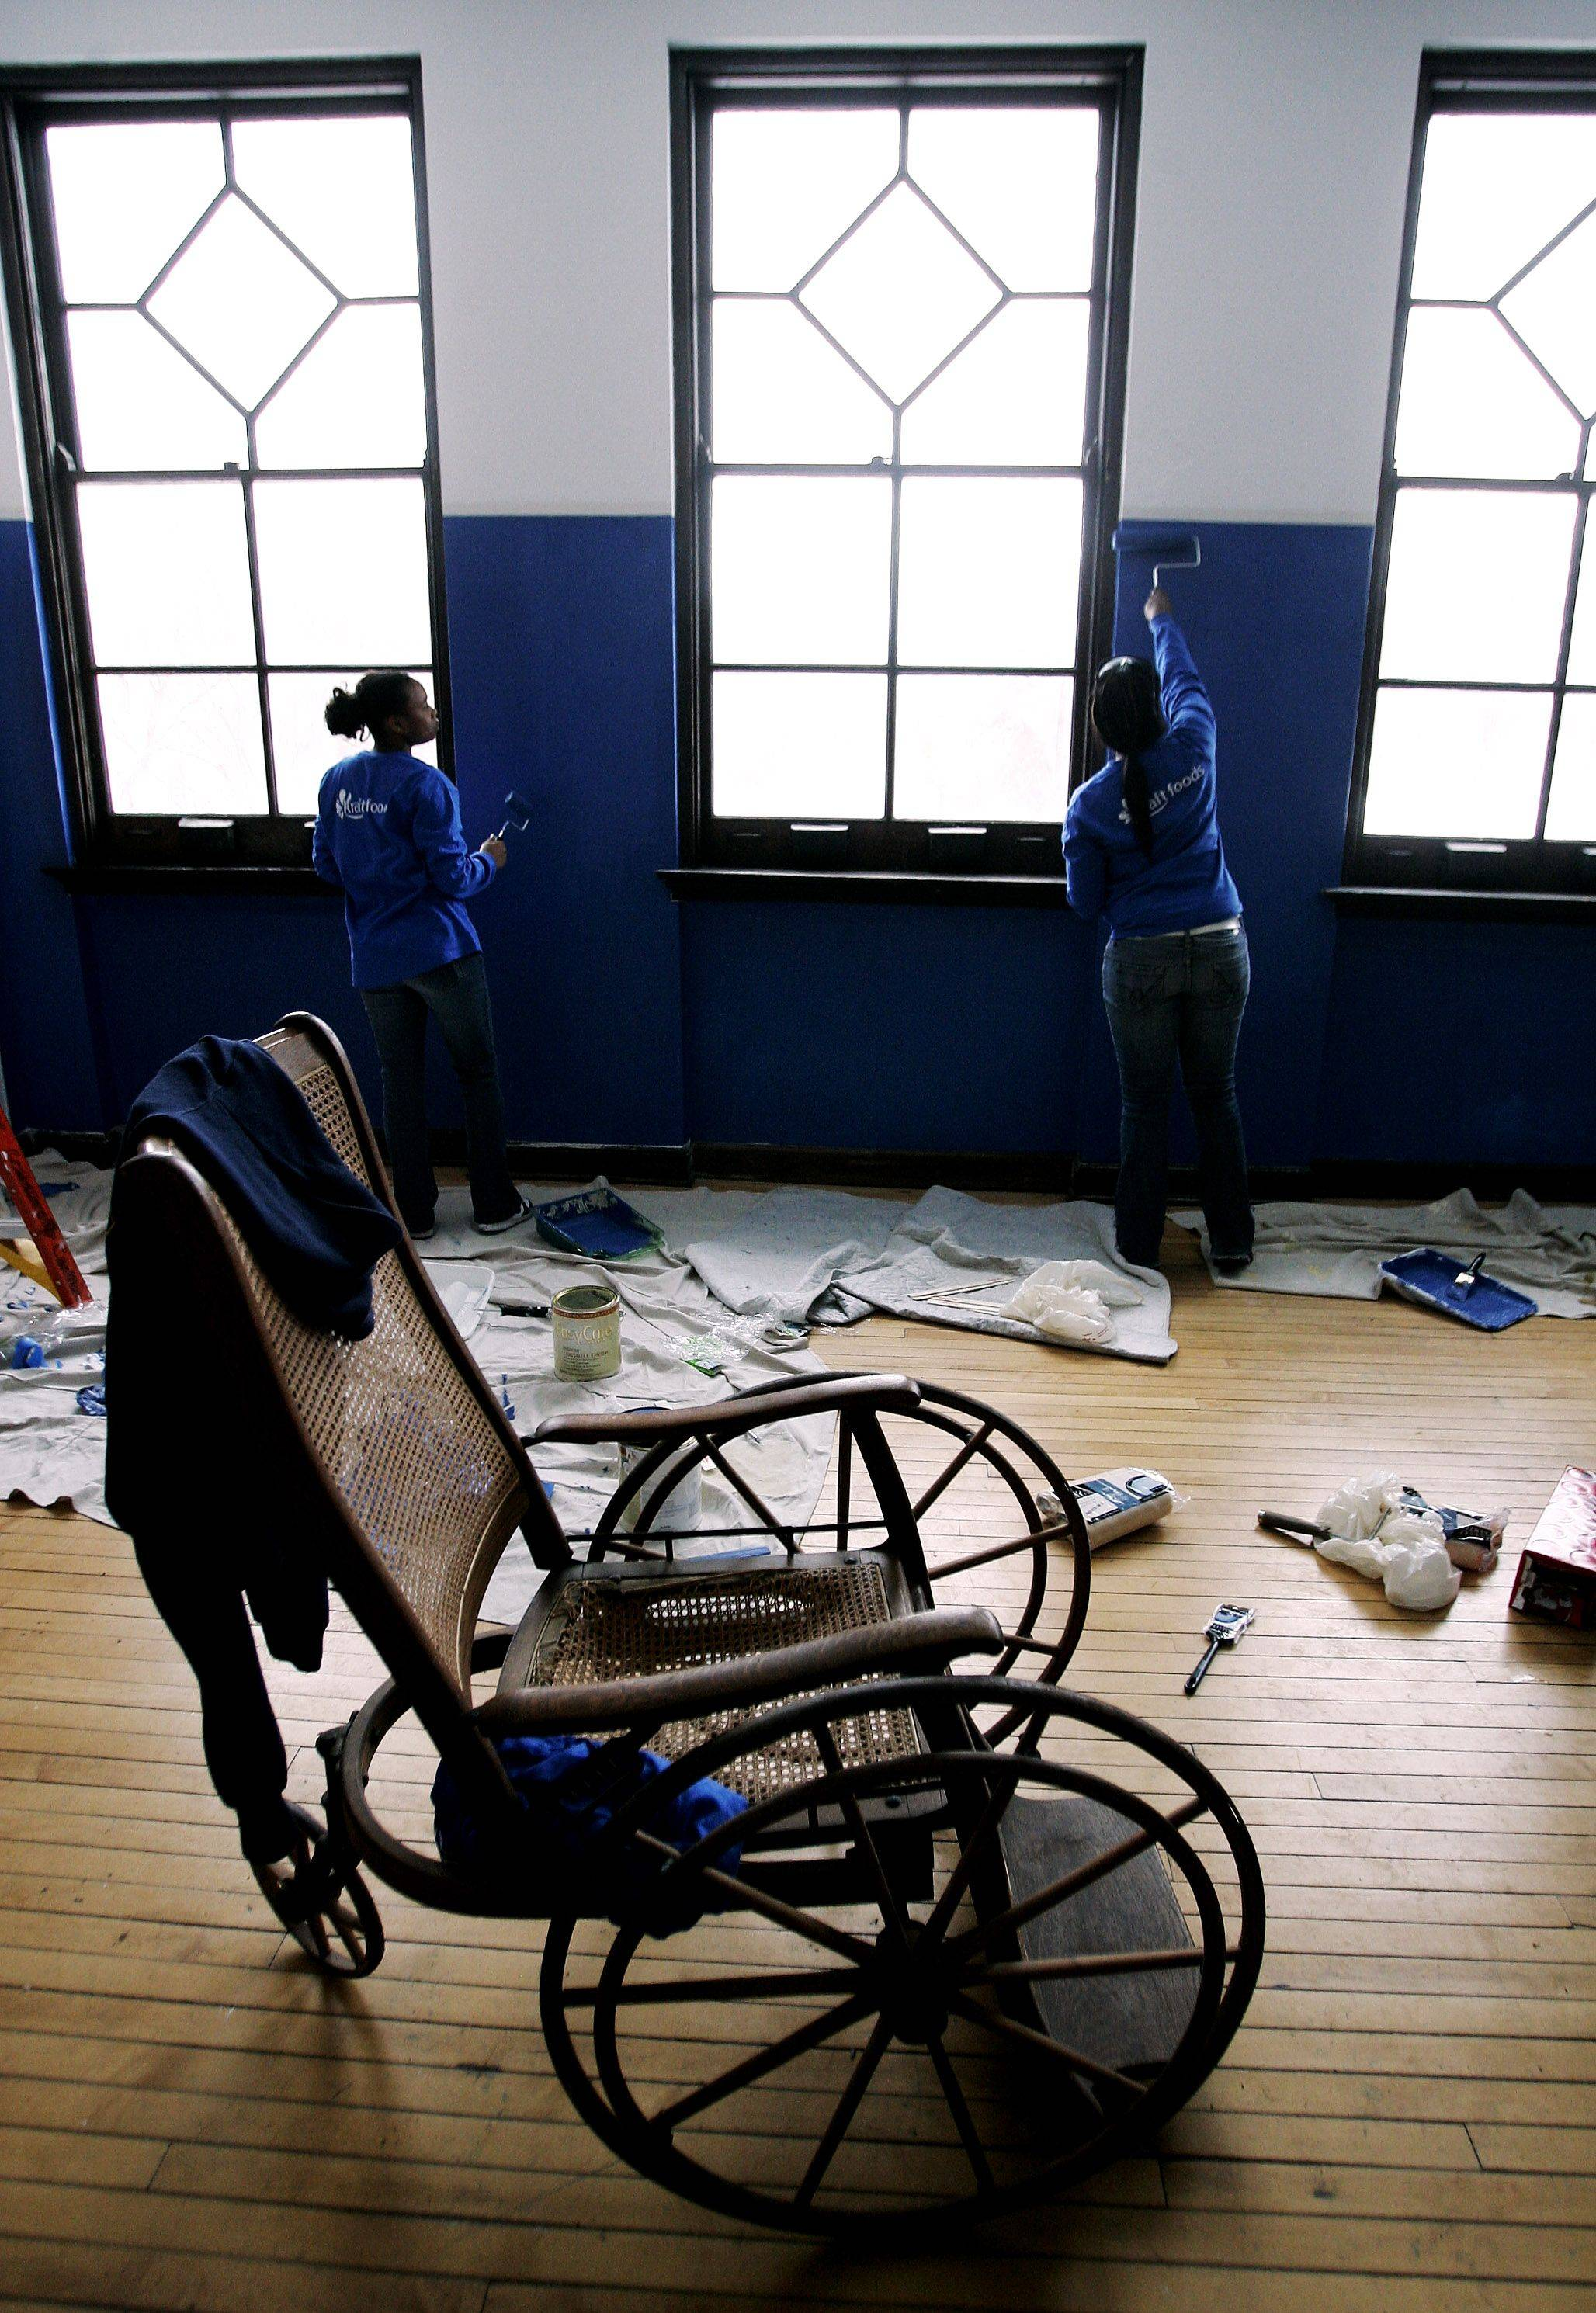 LaDana Givens, 18, of North Chicago, left, and Savannah Bush, 21, of Waukegan paint a room at Great Lake Adaptive Sports Association in Lake Forest Monday as students from YouthBuild Lake County participate in community service projects for Martin Luther King Day.